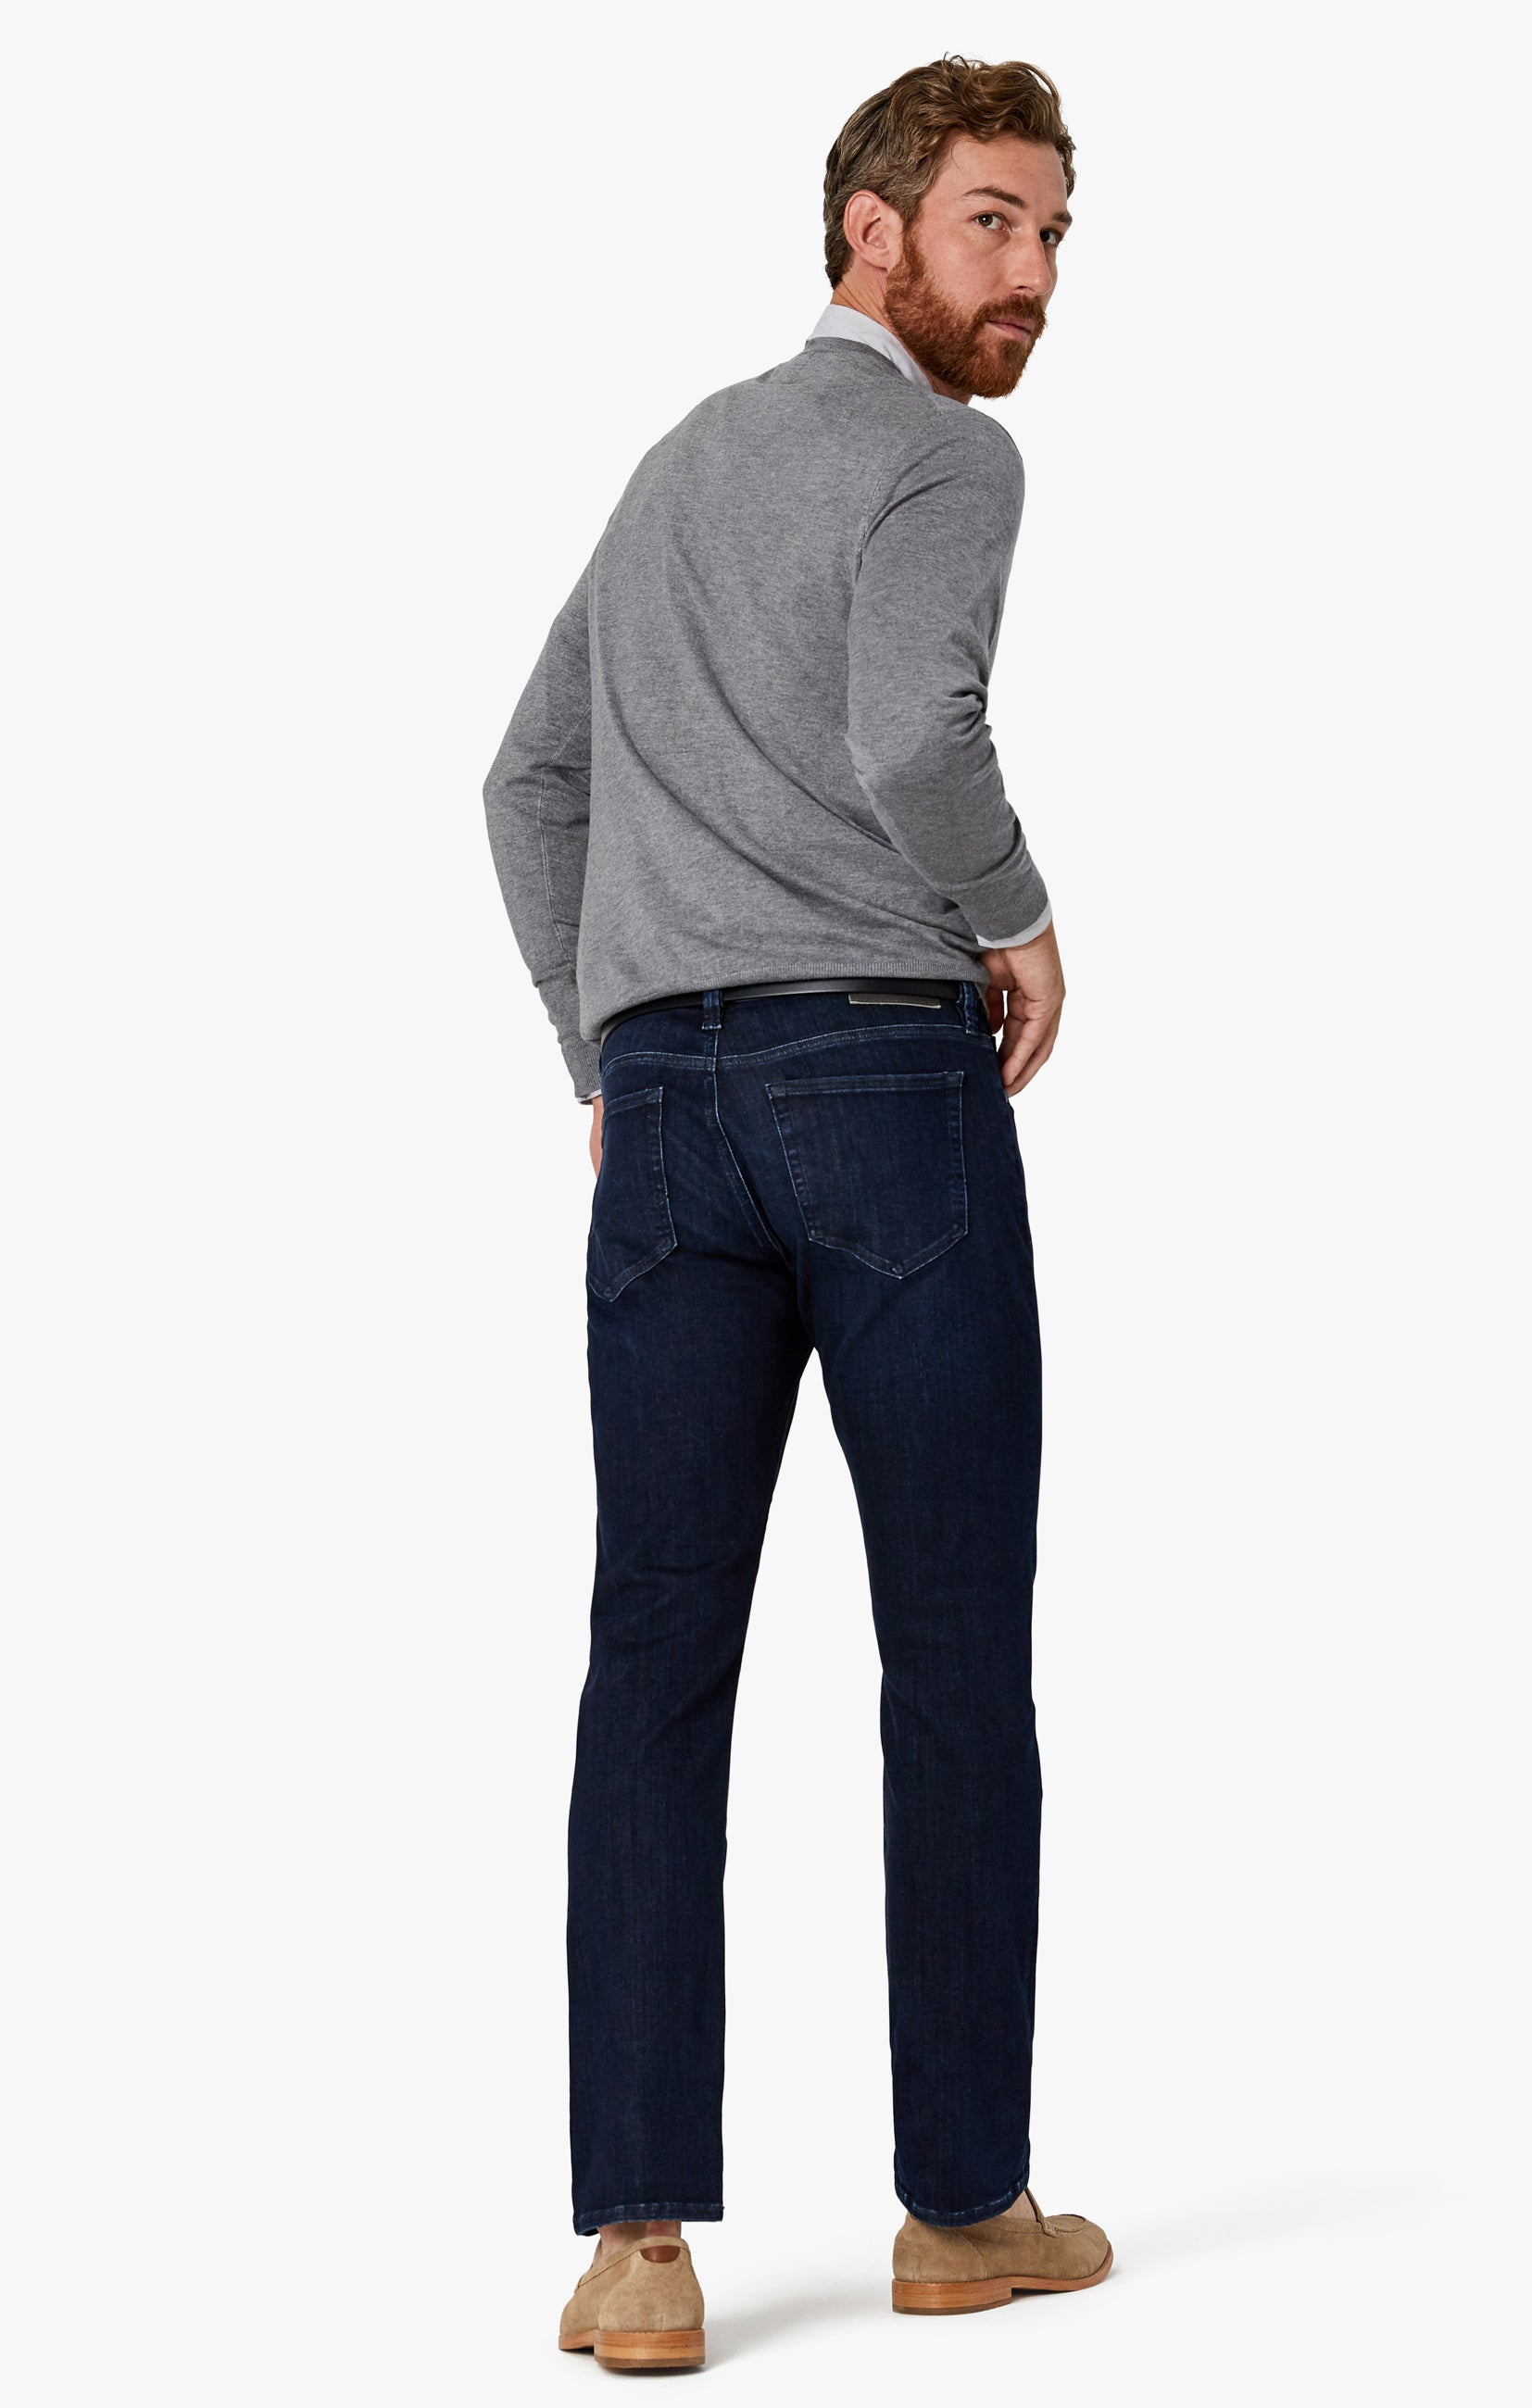 Charisma Relaxed Straight Jeans in Deep Urban Image 2